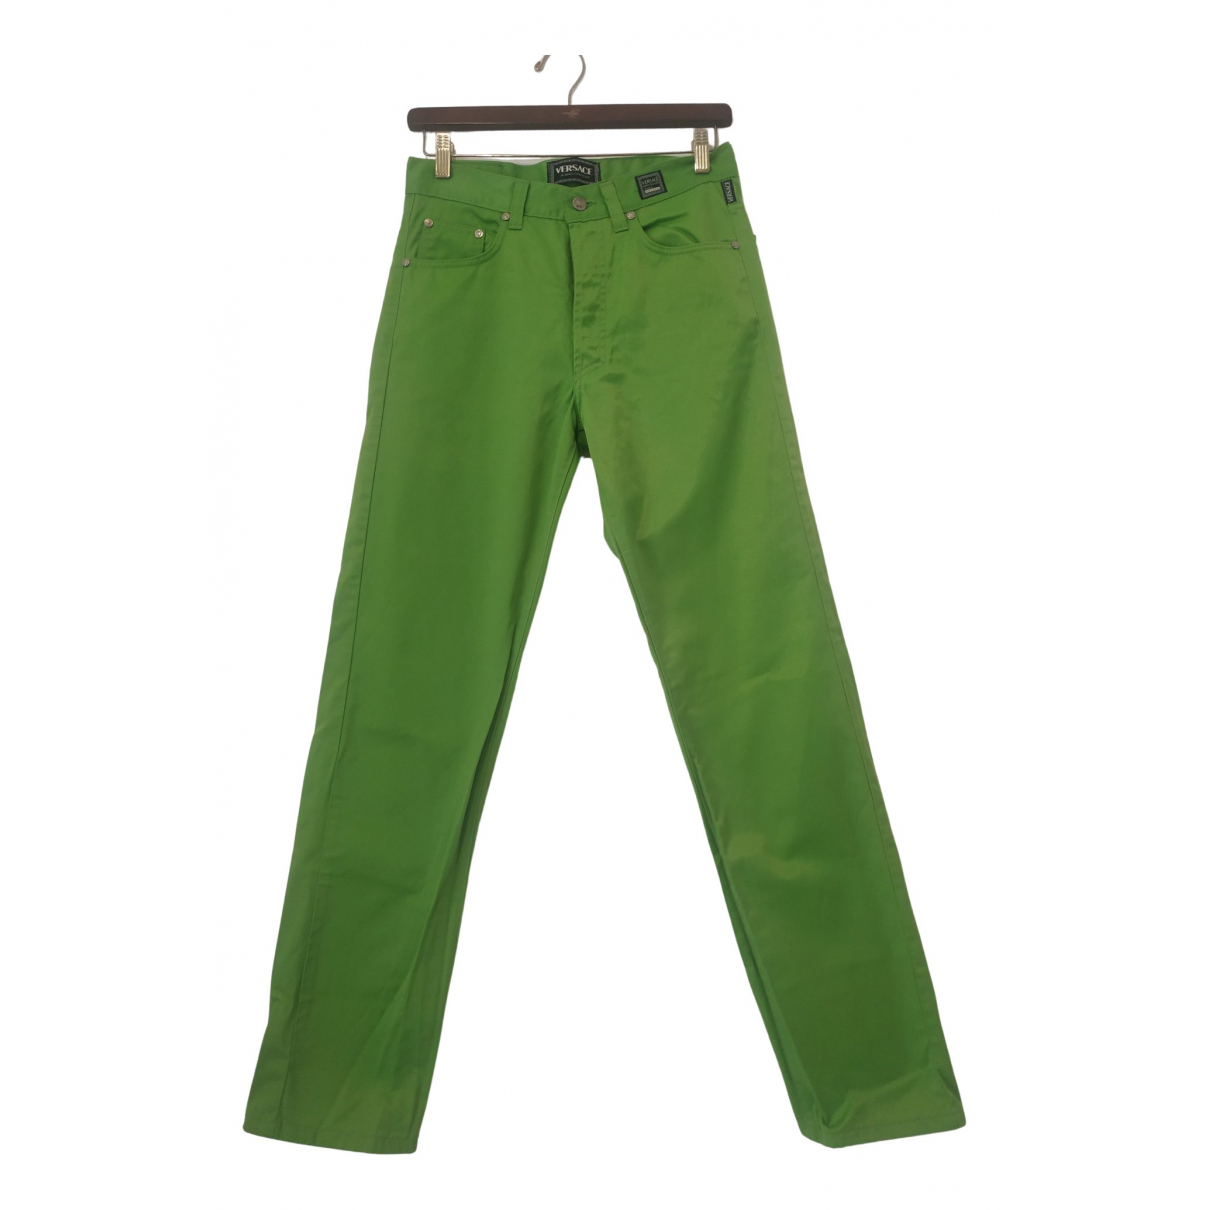 Versace Jeans \N Green Cotton Trousers for Women M International